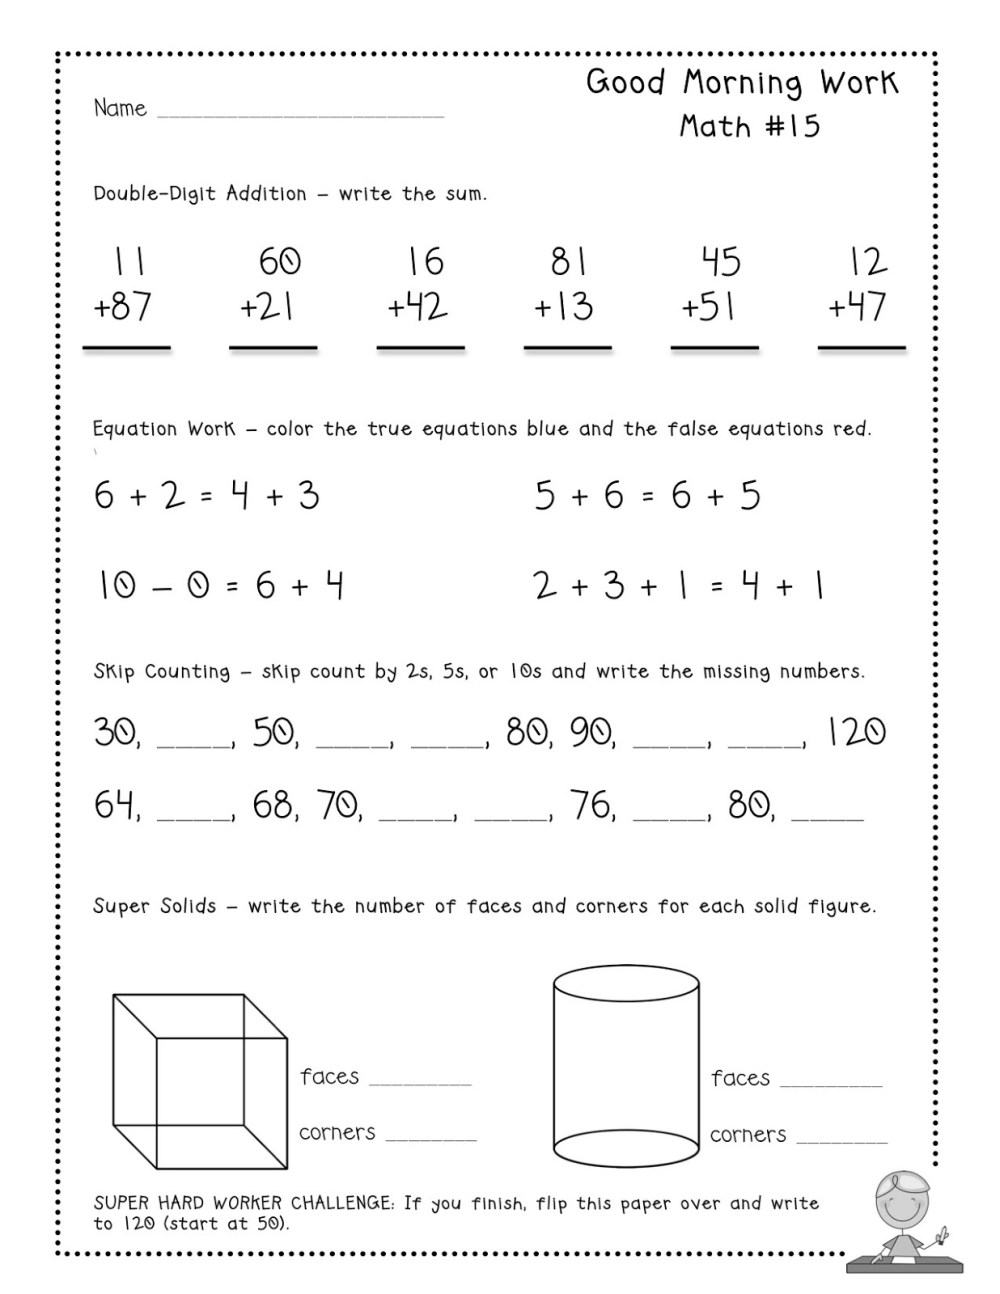 medium resolution of 2nd Grade Morning Work Worksheets   Printable Worksheets and Activities for  Teachers